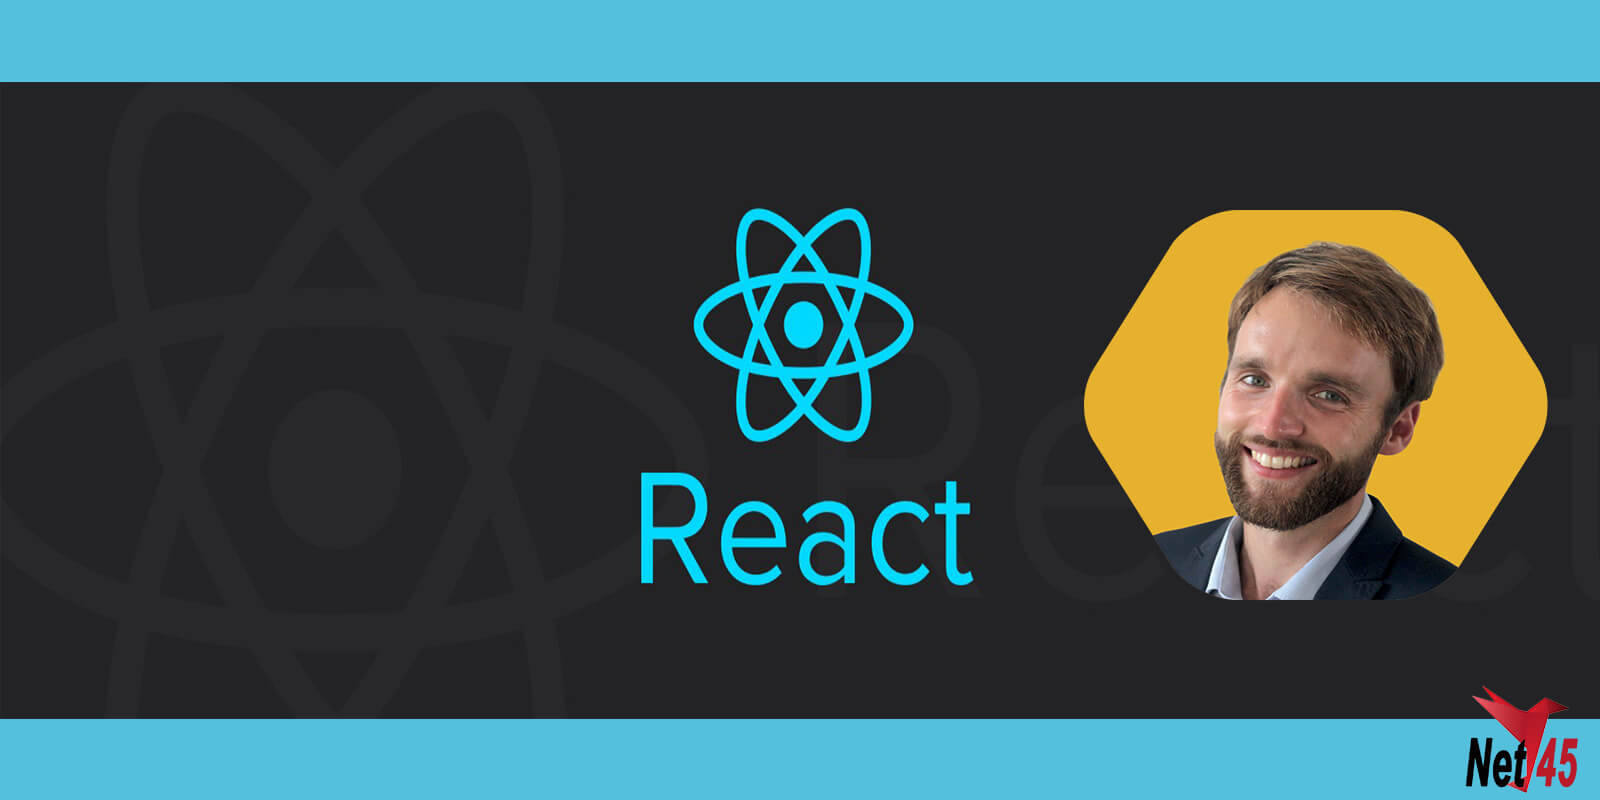 react,react js,javascript,javascript tutorial,reactjs,react tutorial,learn javascript,react tutorial for beginners,learn react,javascript tutorial for beginners,react js tutorial,generate pdf using react and node,javascript react,react app,best javascript framework,javascript tutorial 2019,react course,generate pdf using javascript,reactjs tutorial,html and css,angular vs react 2019,react vs vue 2019